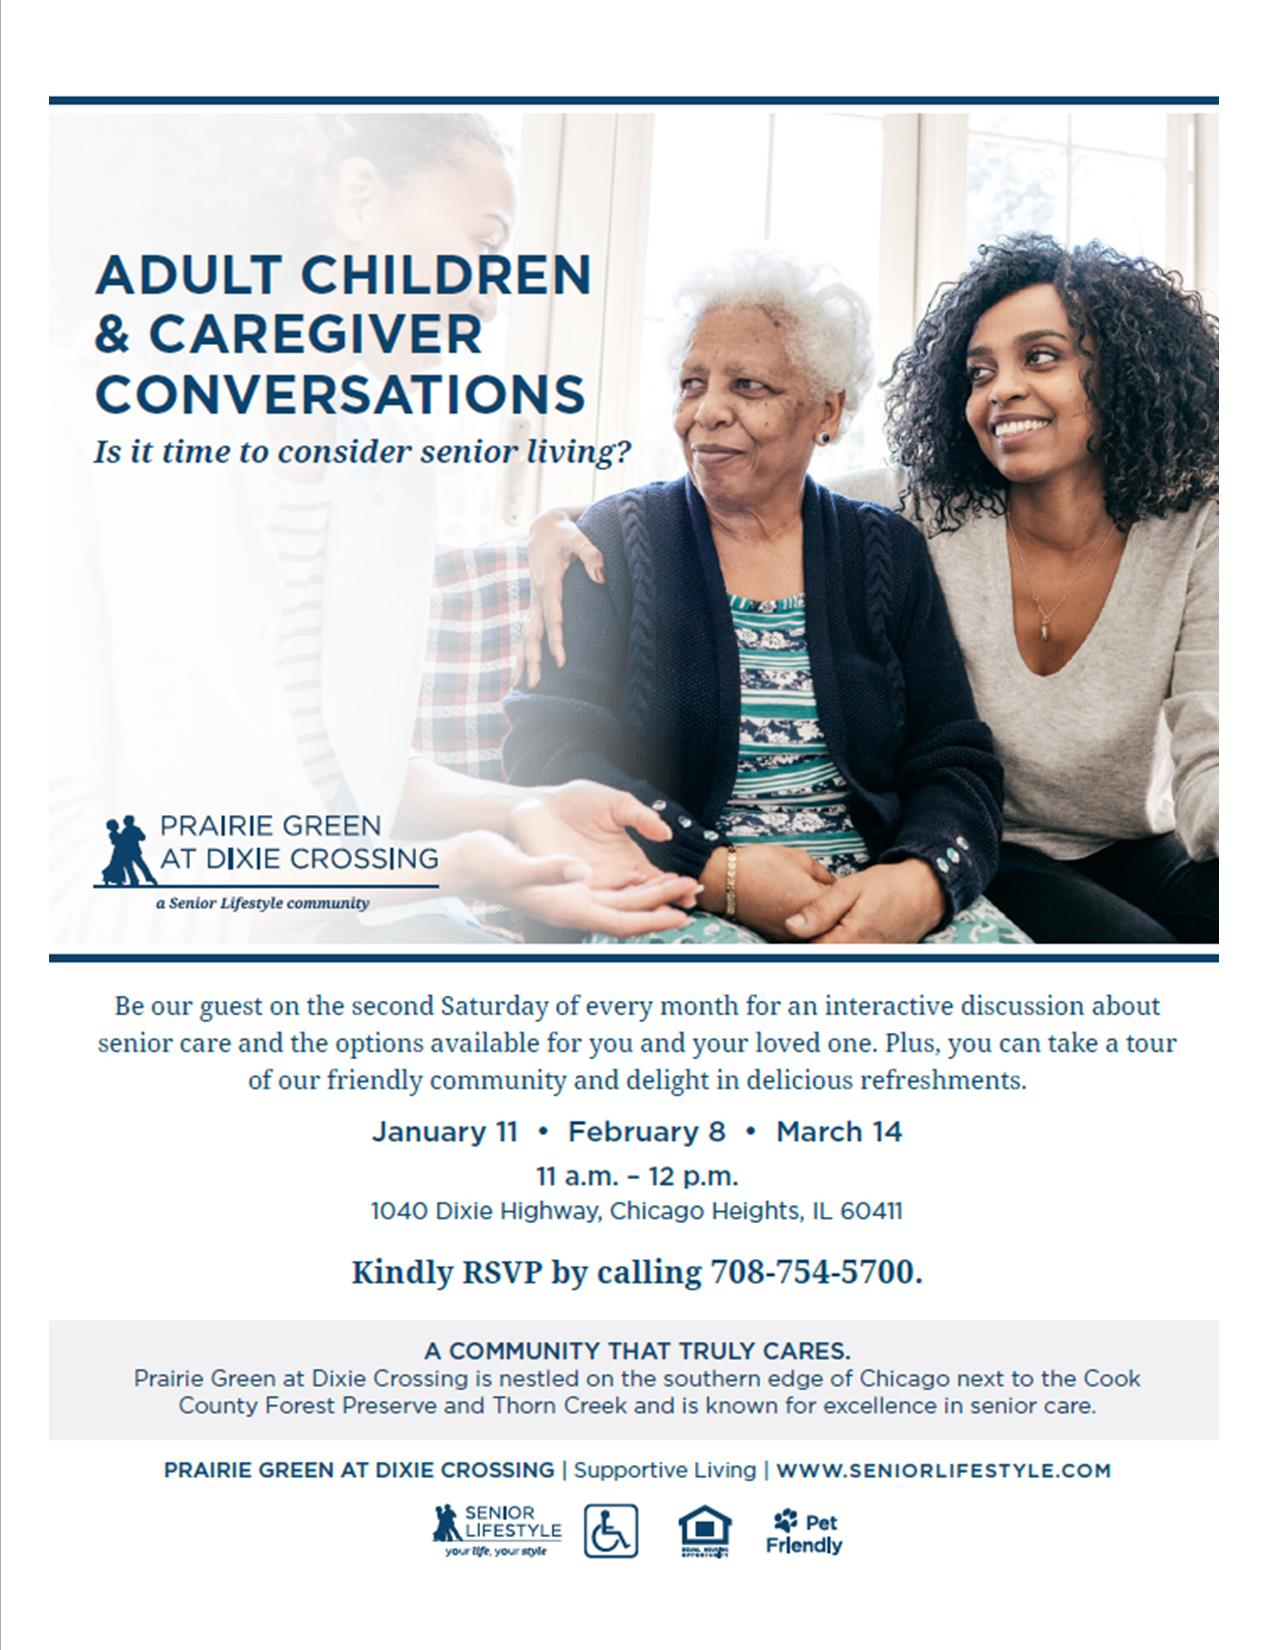 Prairie Green at Dixie Crossing - Adult Children and Caregiver Conversations 2020